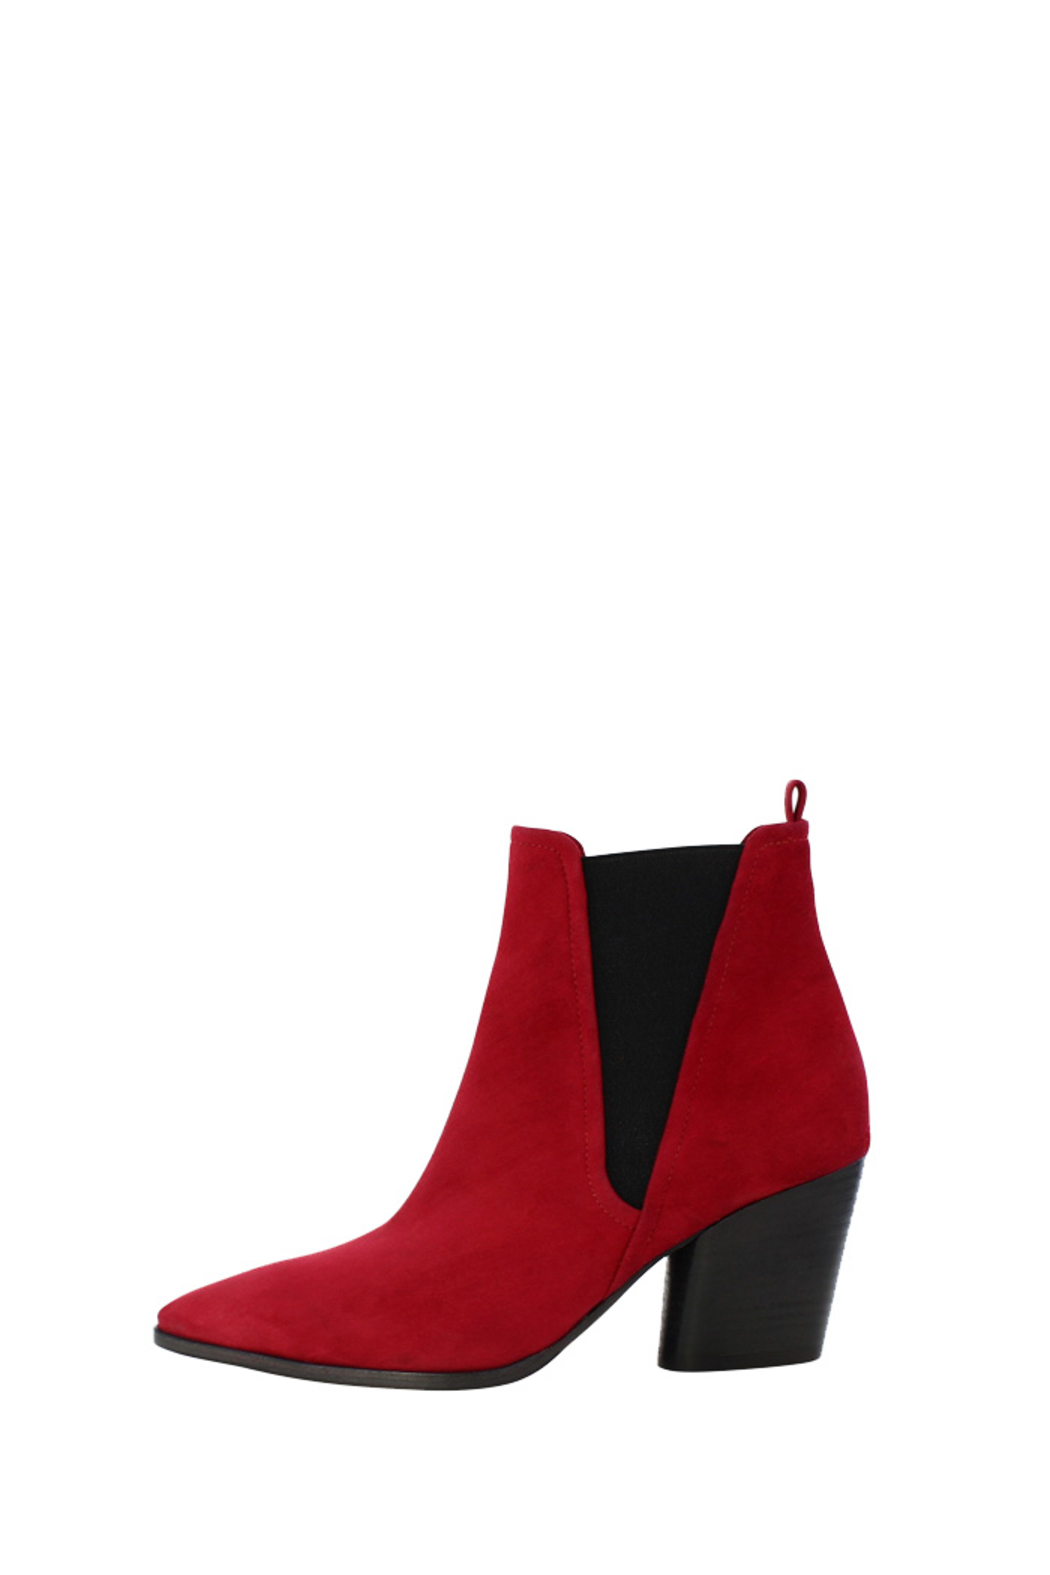 Kennel & Schmenger RED ANKLE BOOT - Main Image